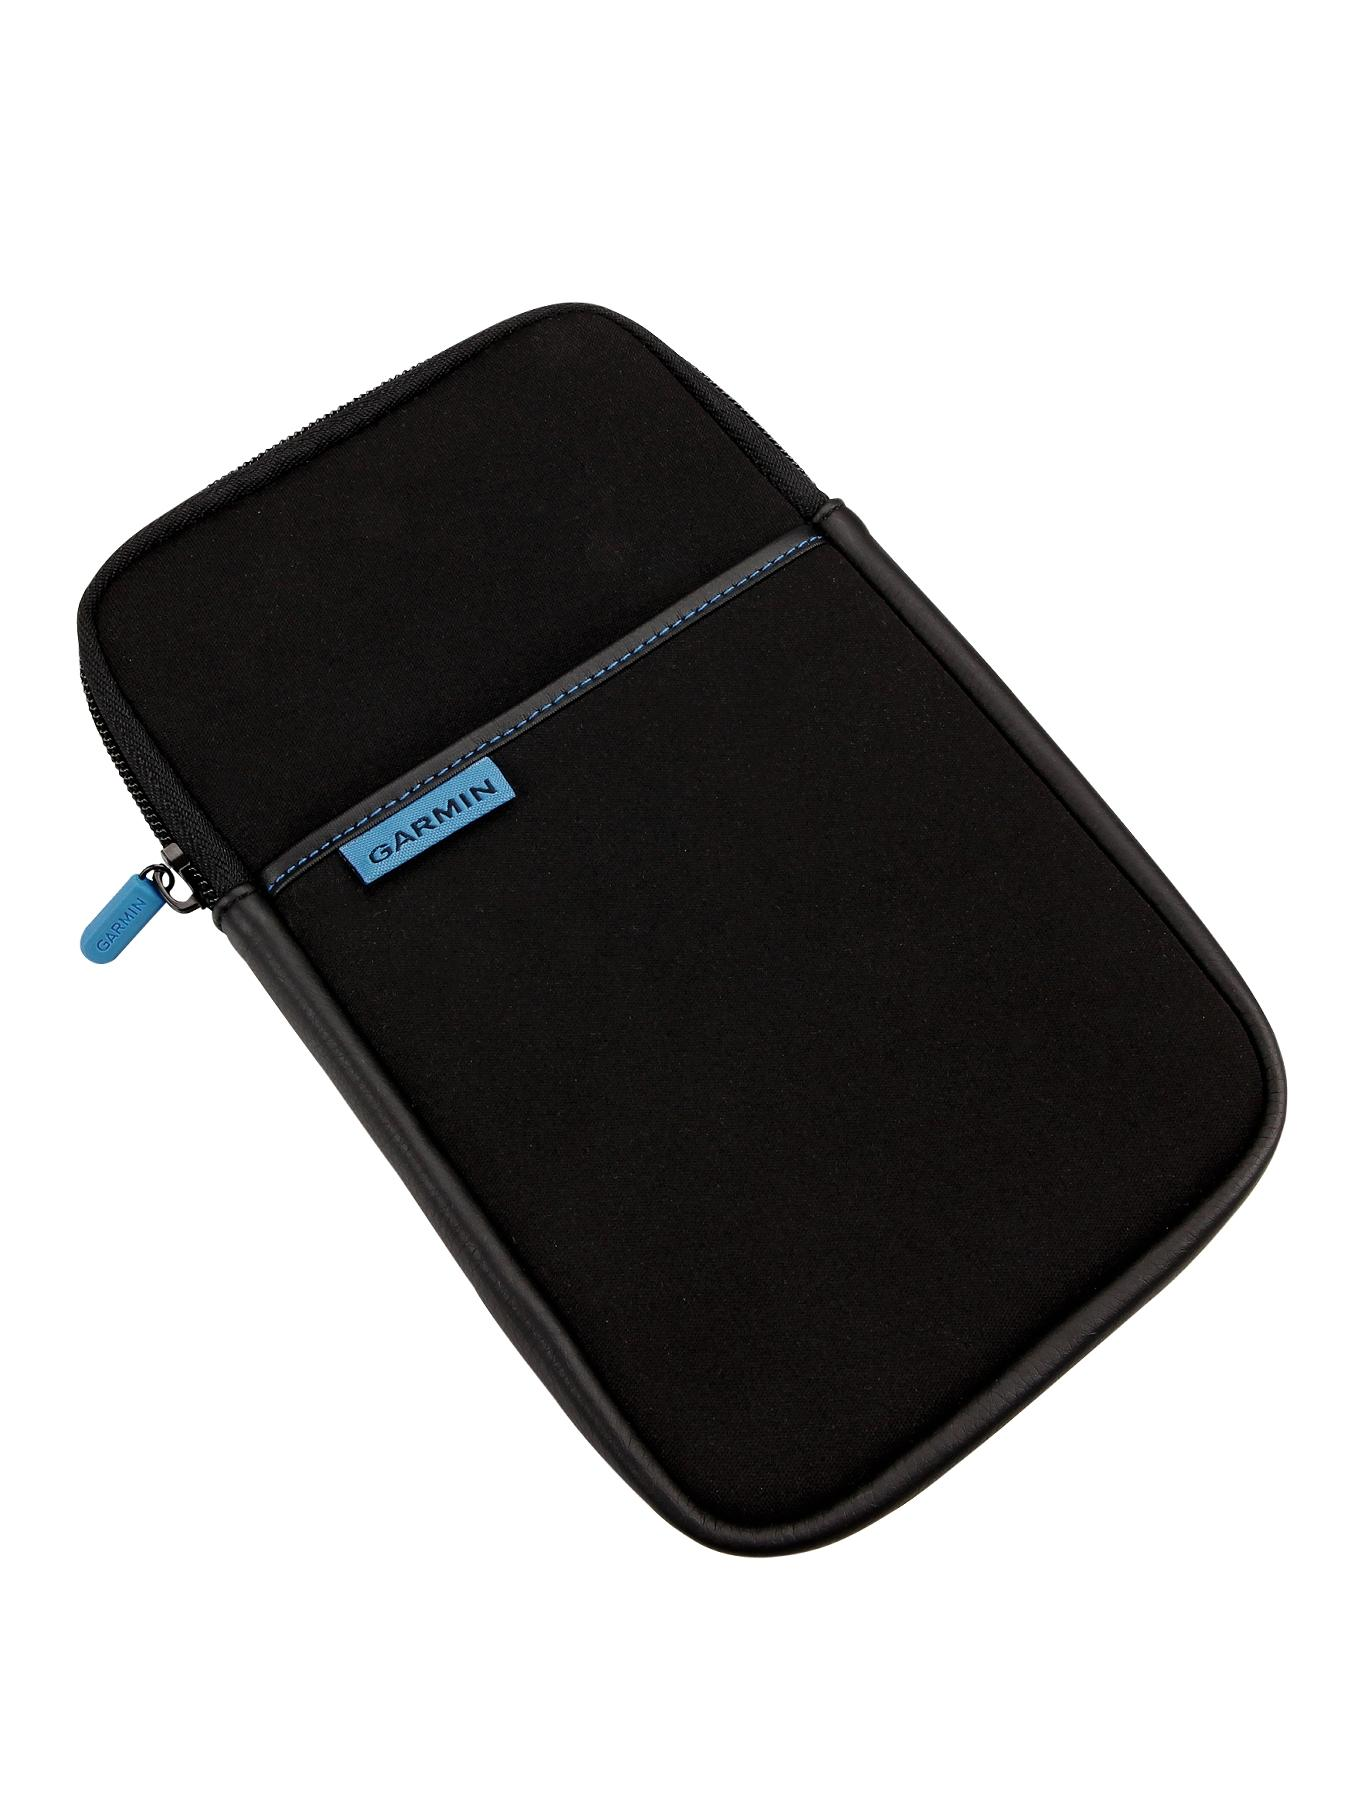 Garmin 7 inch Universal Carry Case